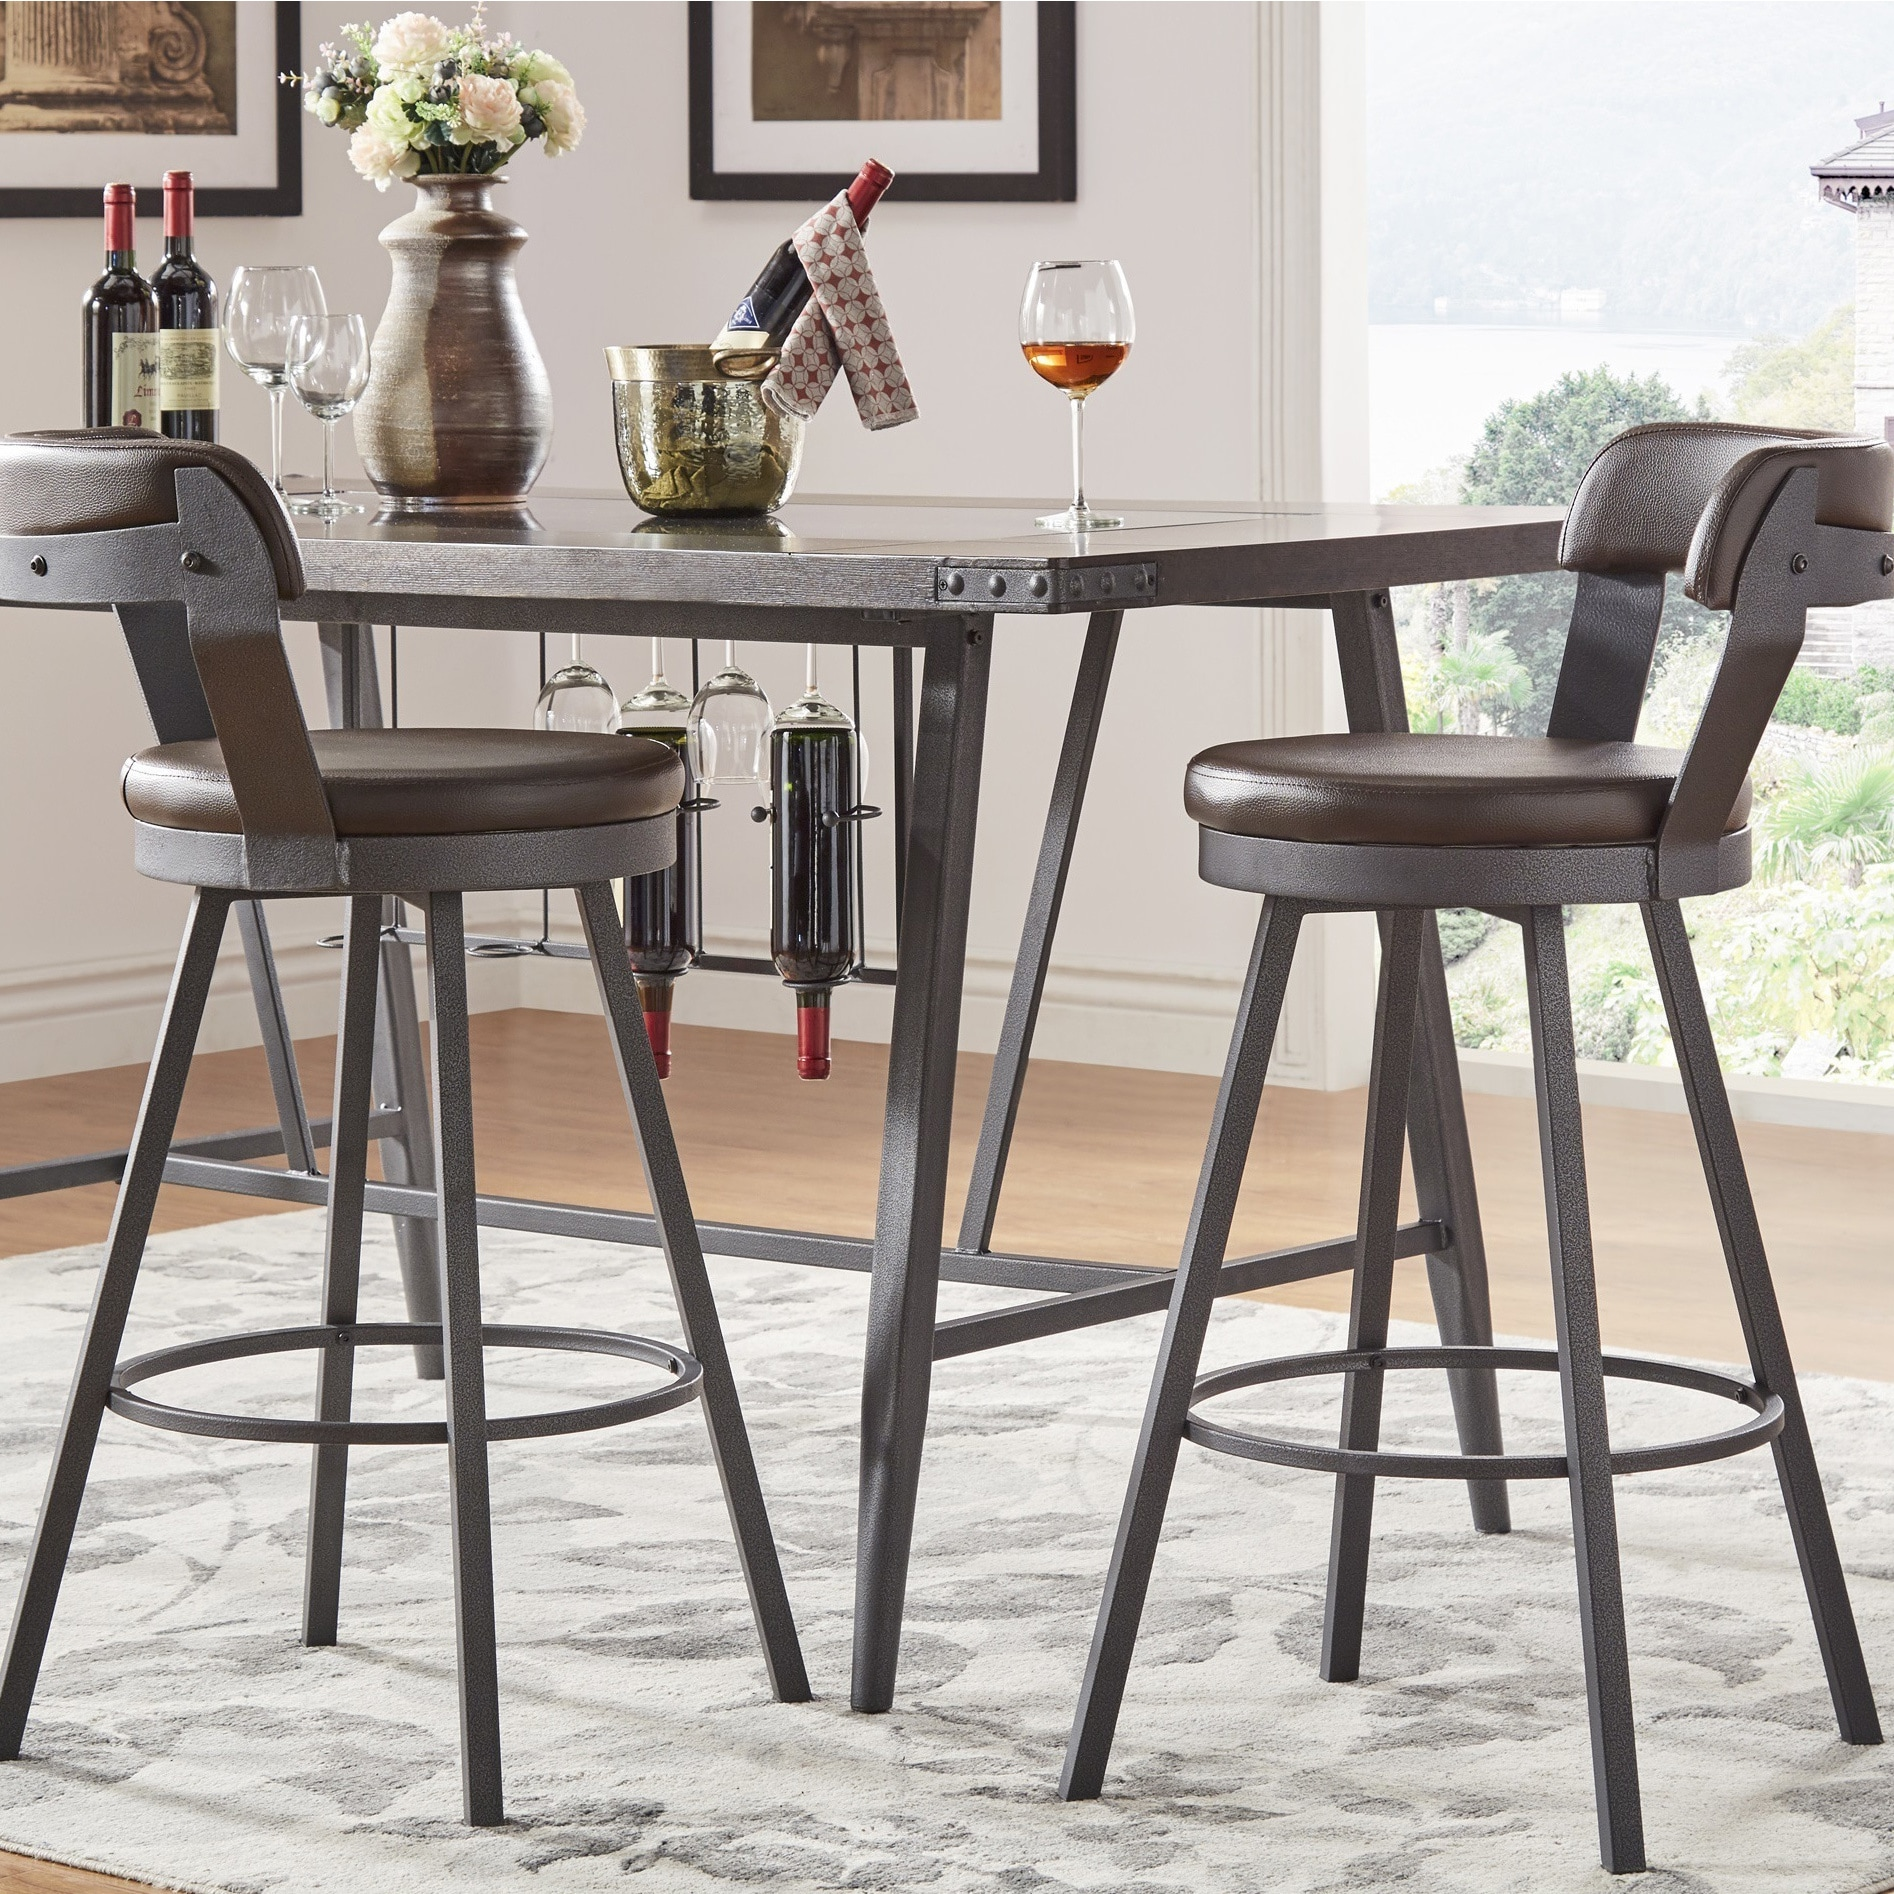 Terrific Harley Faux Leather And Metal Swivel Stools Set Of 2 By Inspire Q Modern Gmtry Best Dining Table And Chair Ideas Images Gmtryco